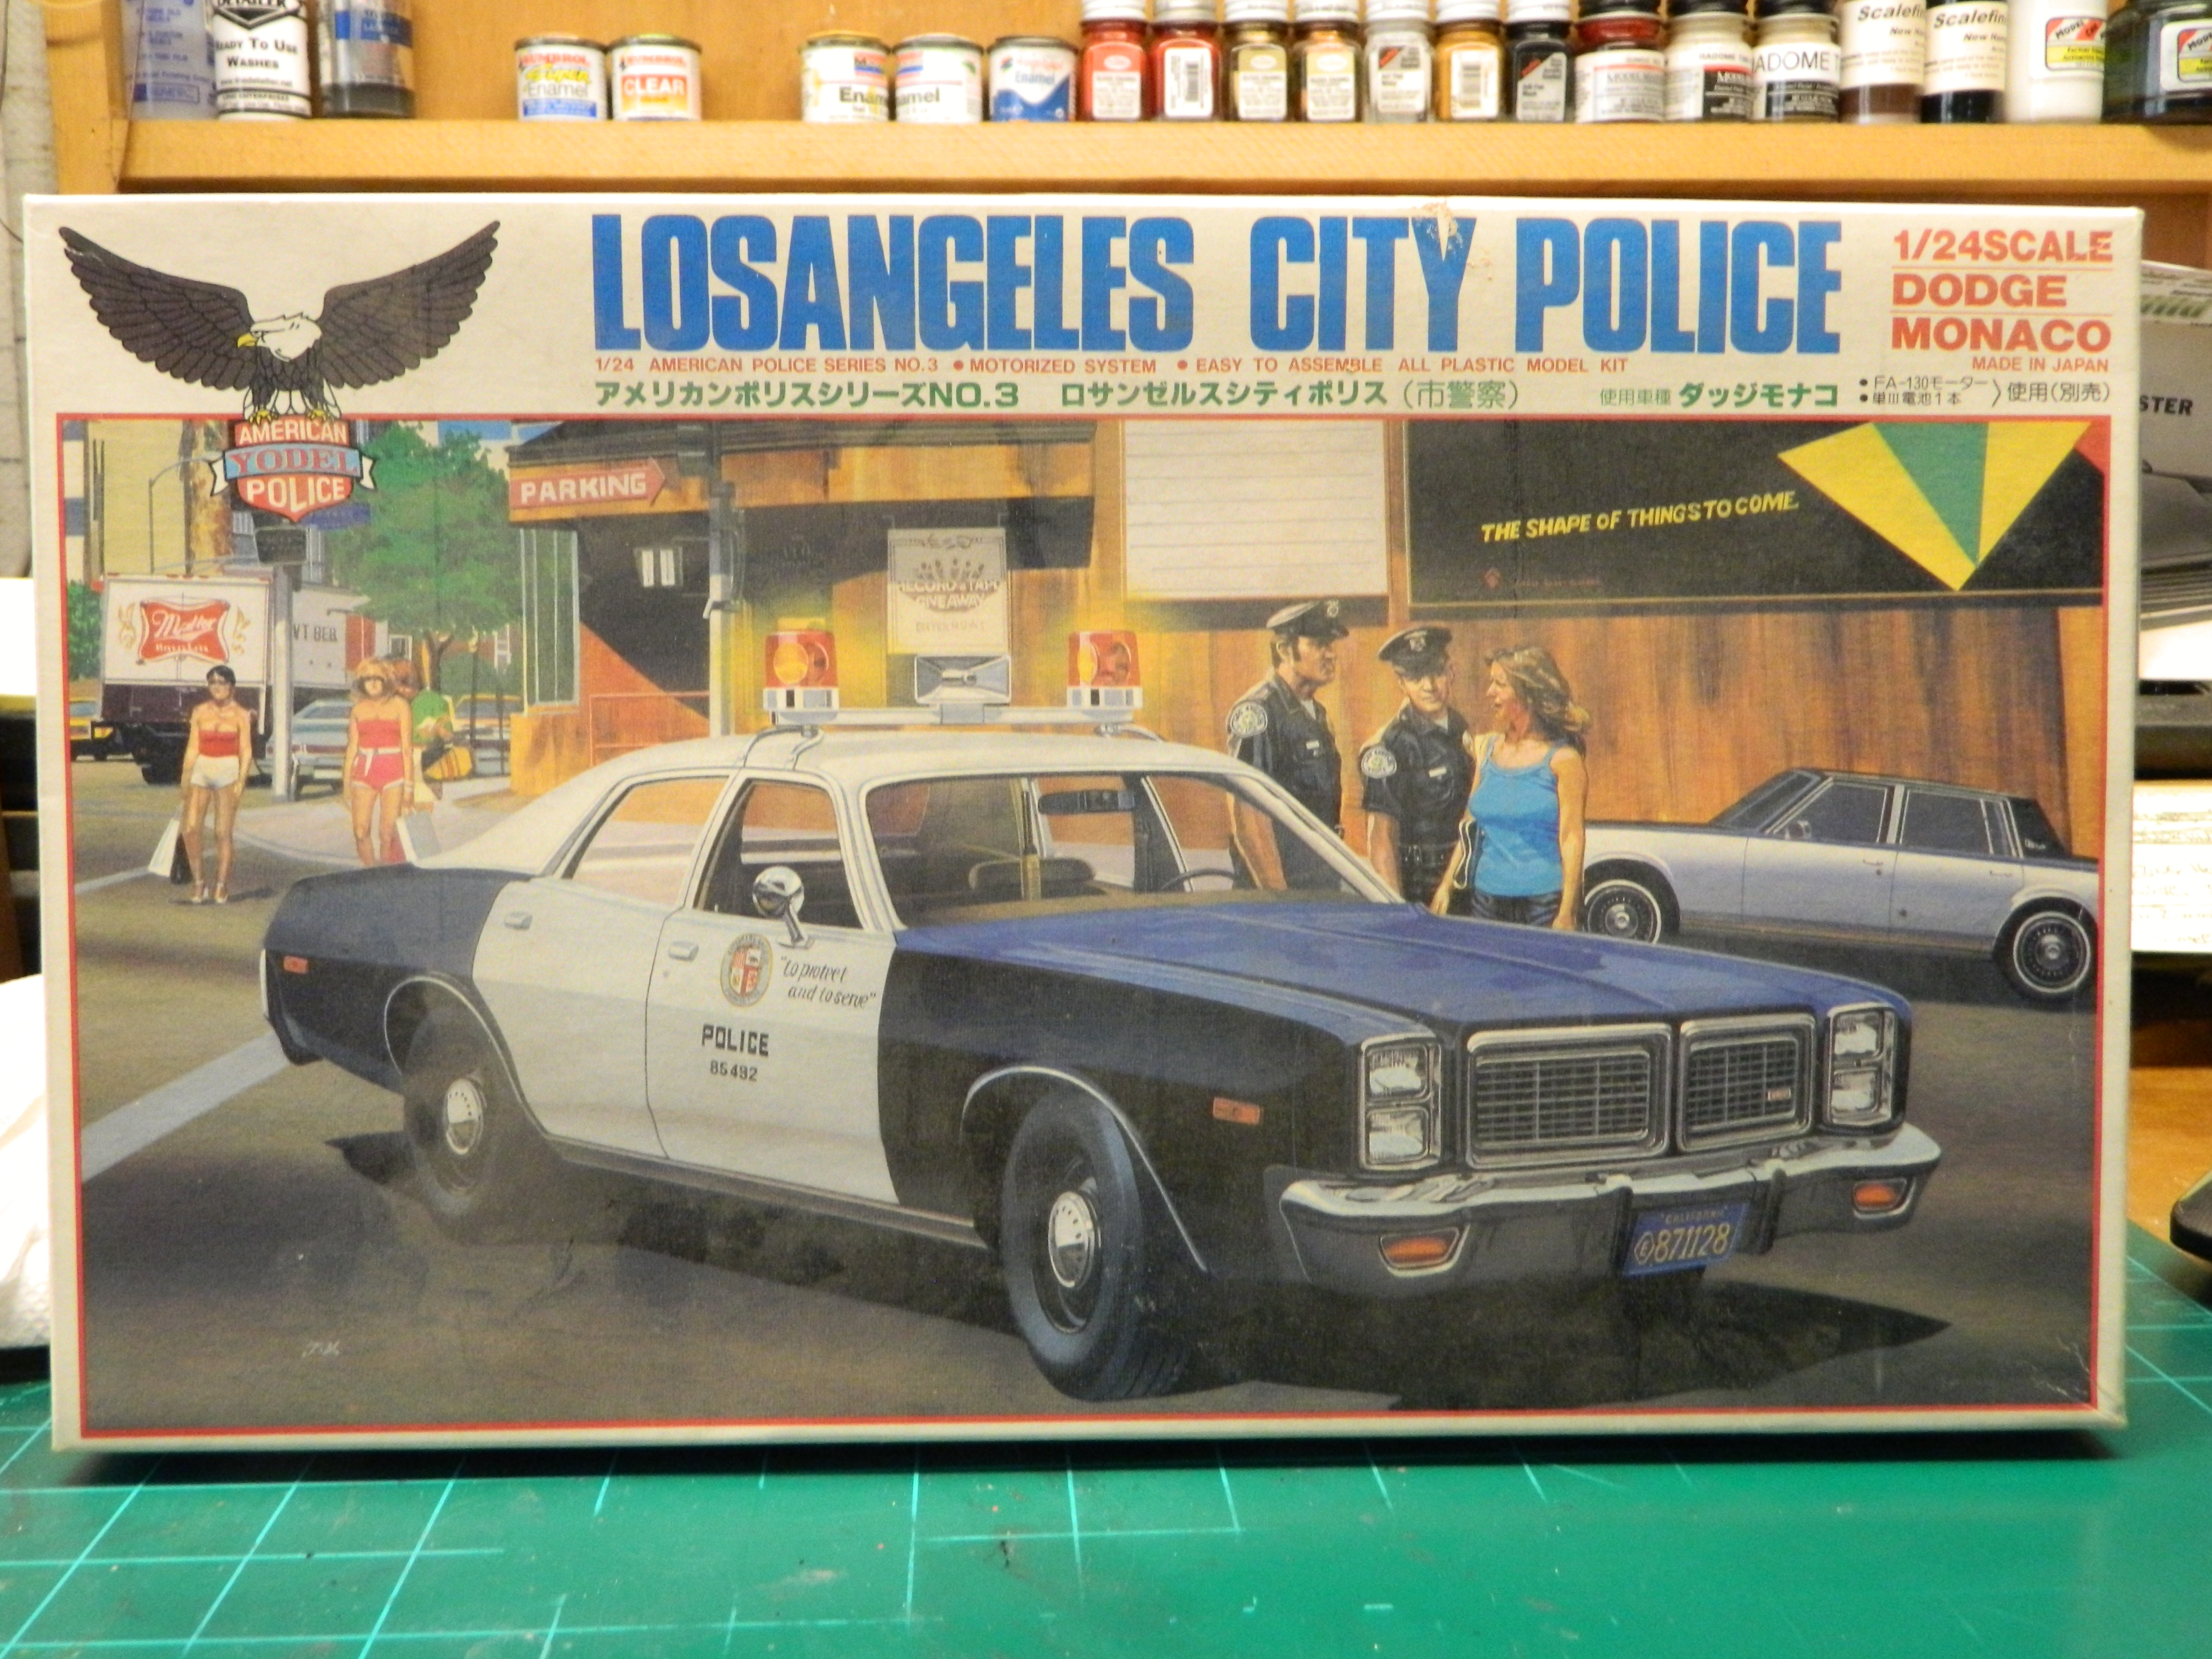 Yodel Plymouth Plymouth Fury Police Car Pictures Images Photos Elevated Mast Photography Of